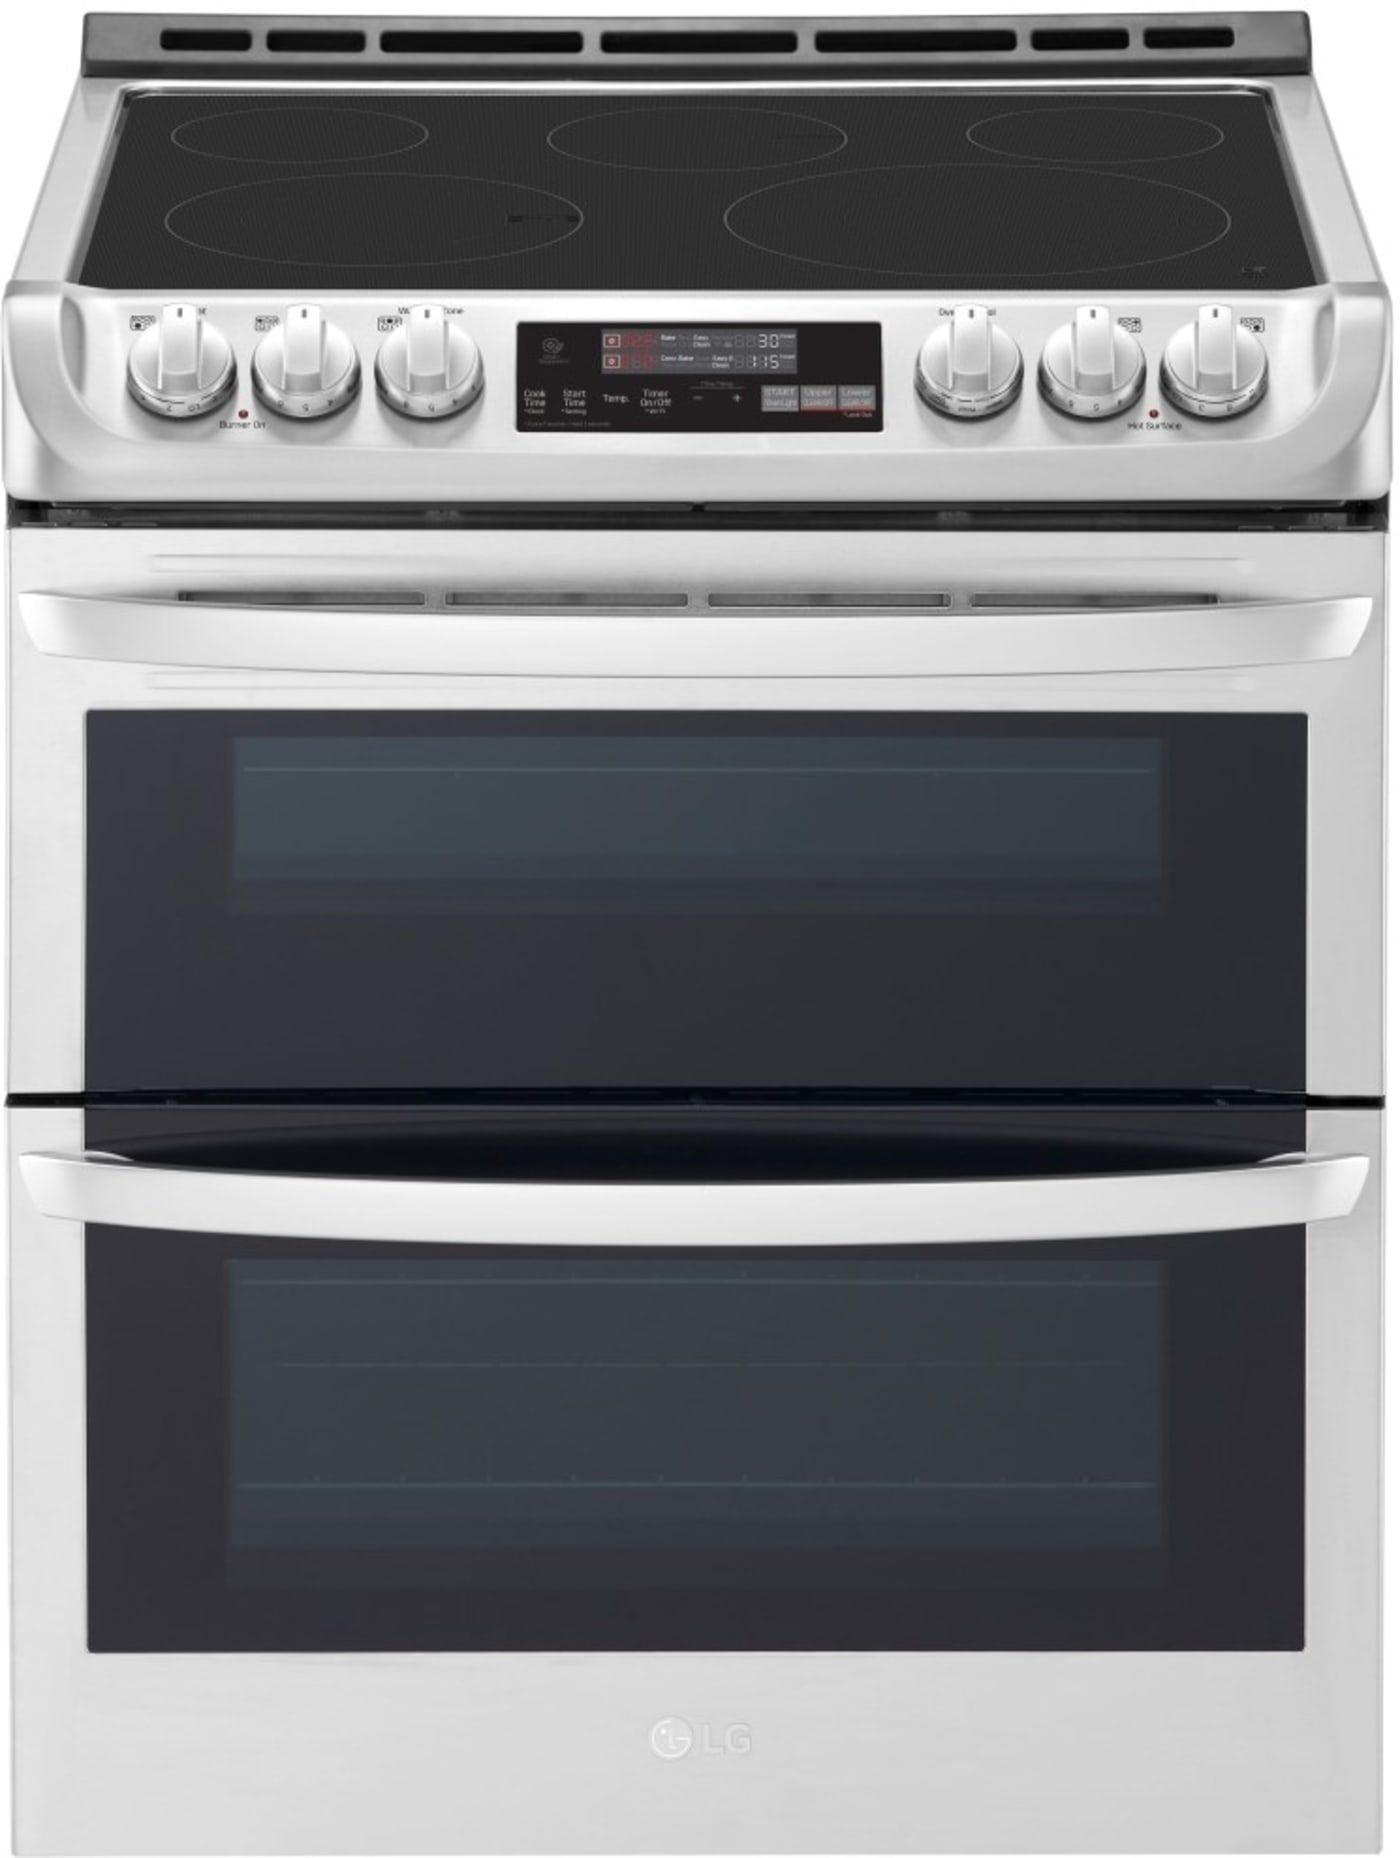 Lte4815st By Lg Electric Ranges Goedekers Com Double Oven